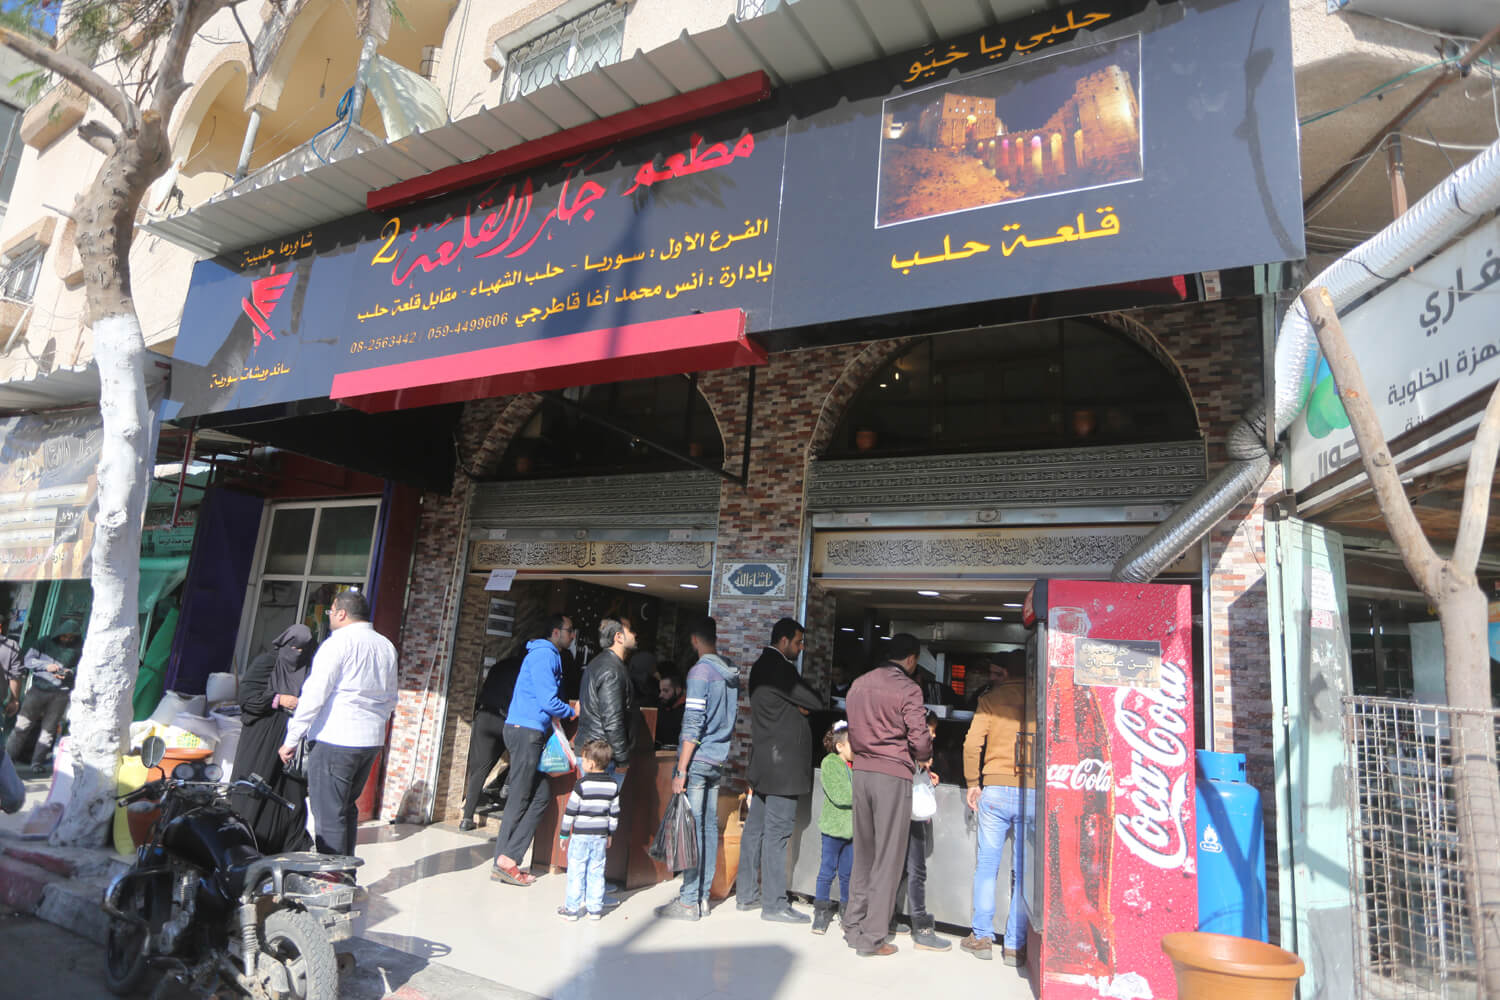 The front of the Syrian Jar Al Qala'a restaurant with a photo of the original location in Aleppo. (Photo: Mohammed Asad)